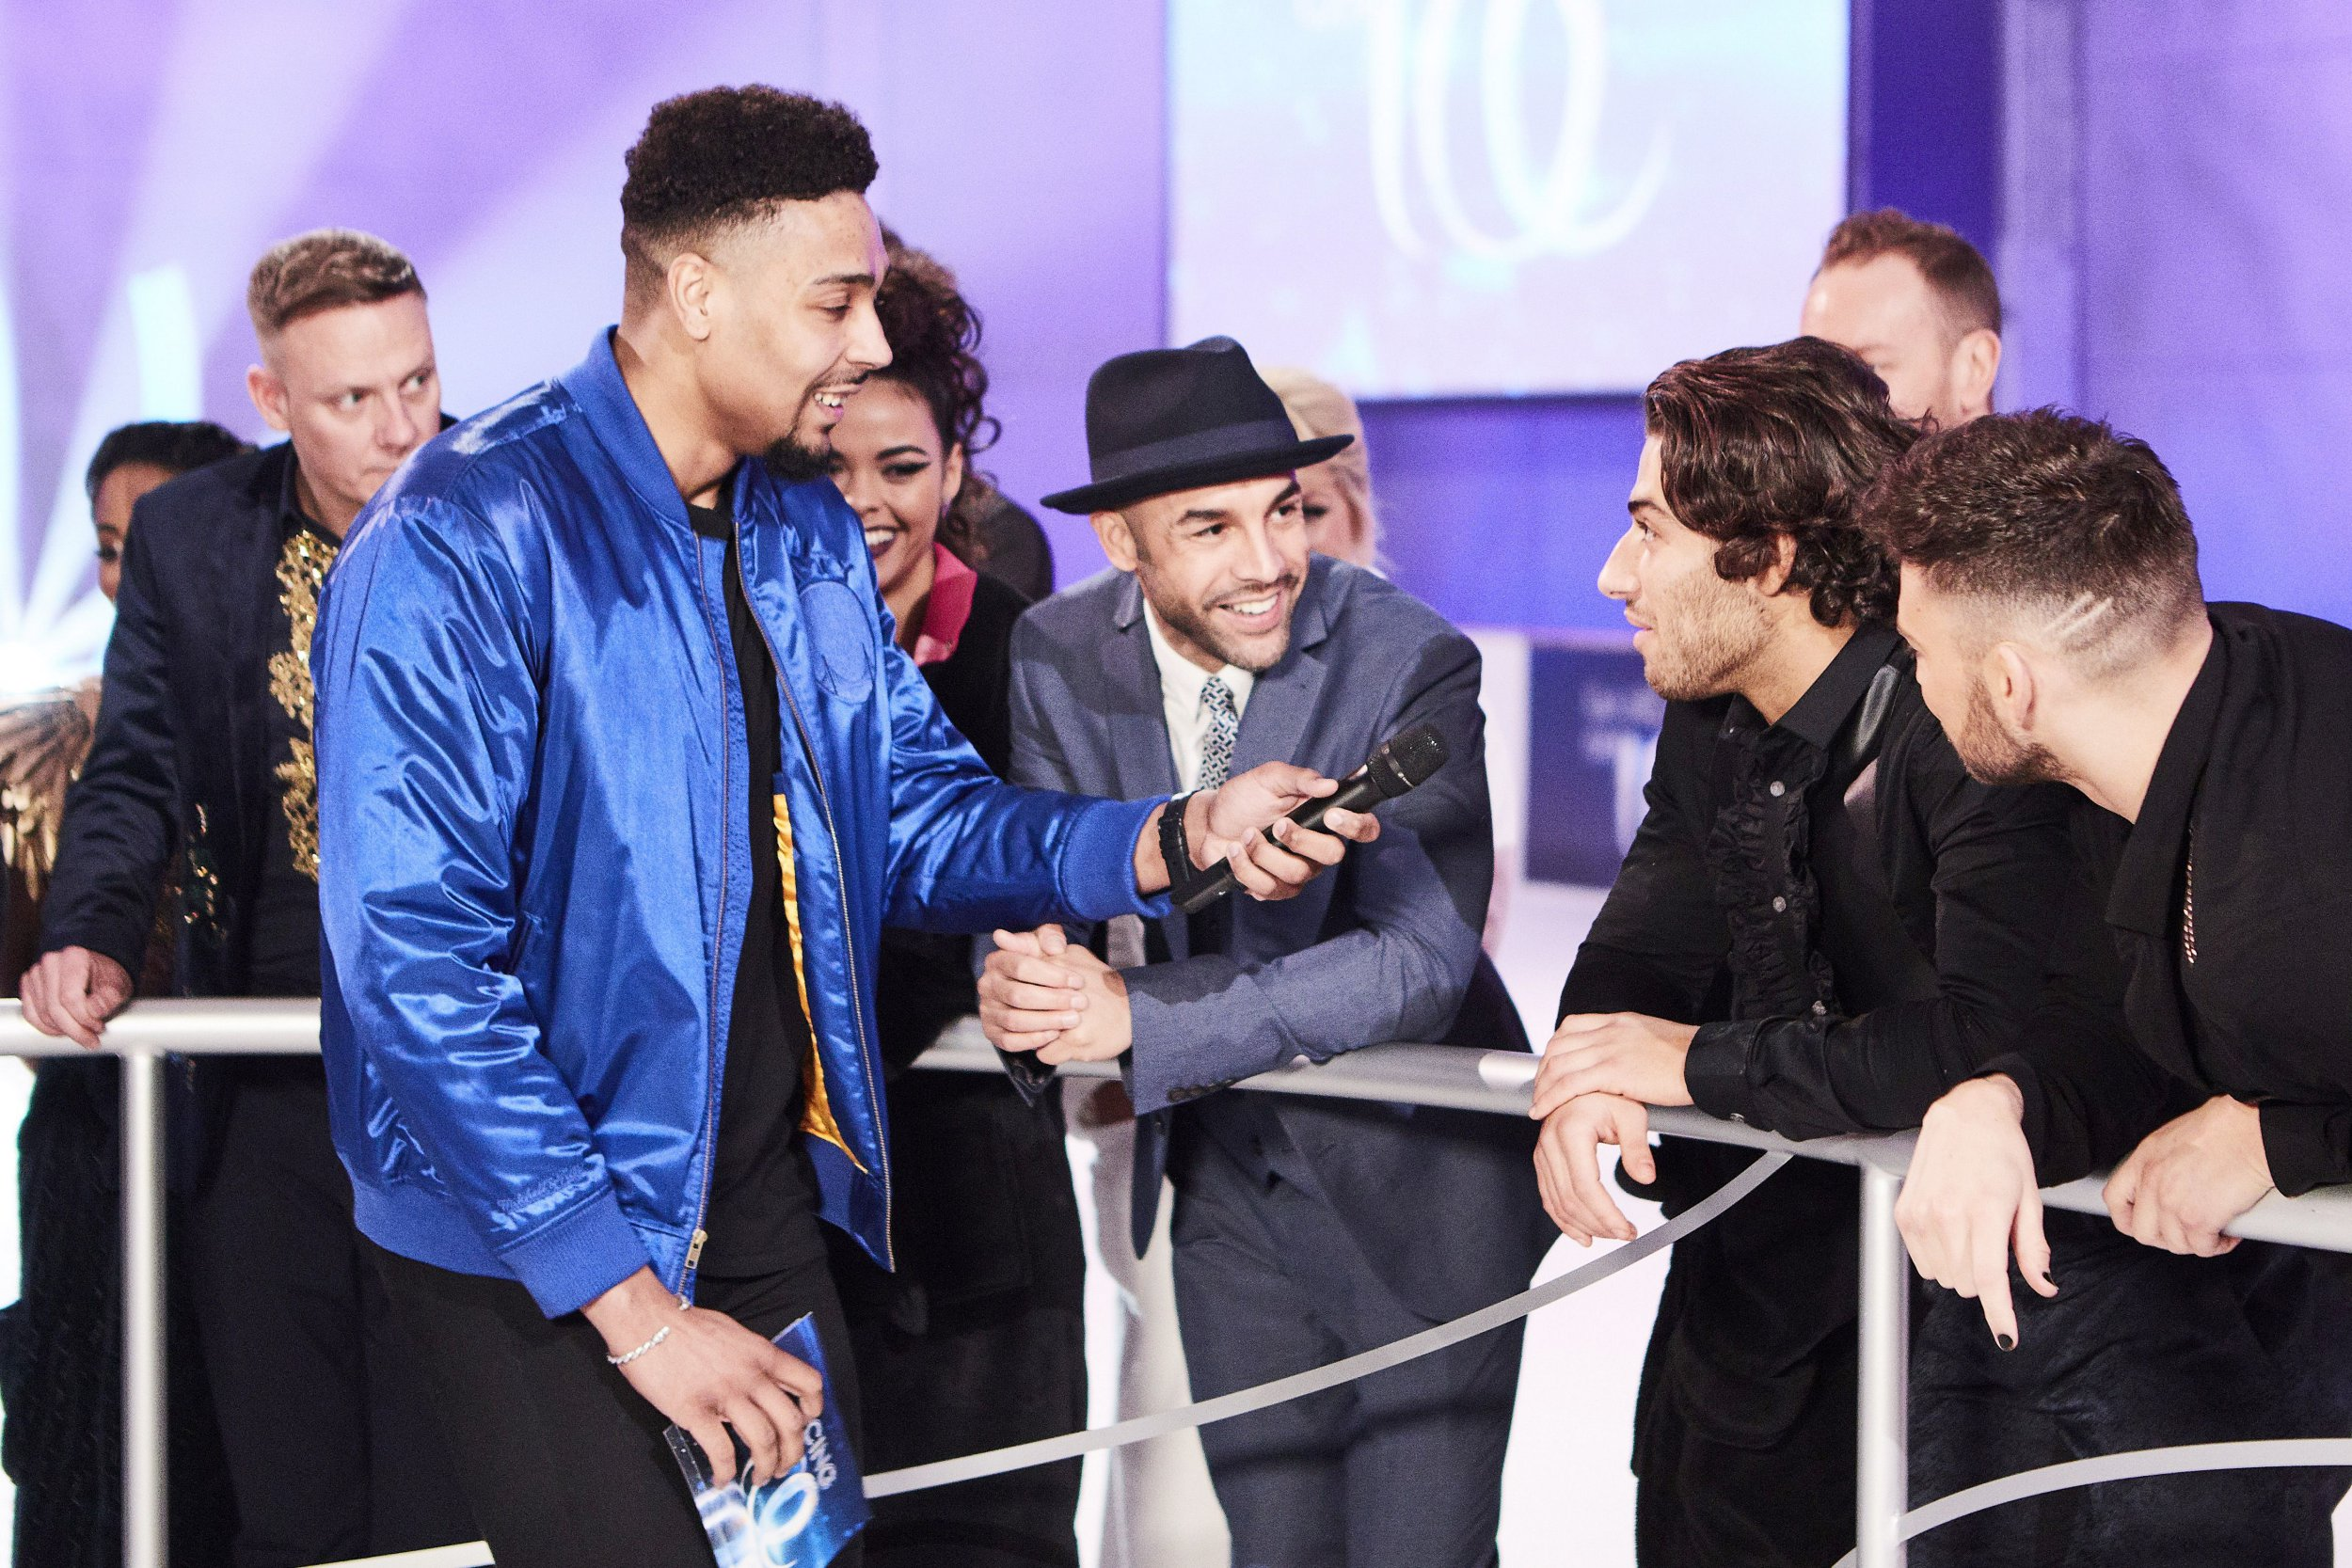 Editorial use only Mandatory Credit: Photo by Matt Frost/ITV/REX/Shutterstock (9342338ab) Jordan Banjo and Kem Cetinay 'Dancing on Ice' TV show, Series 10, Behind the Scenes, Hertfordshire, UK - 28 Jan 2018